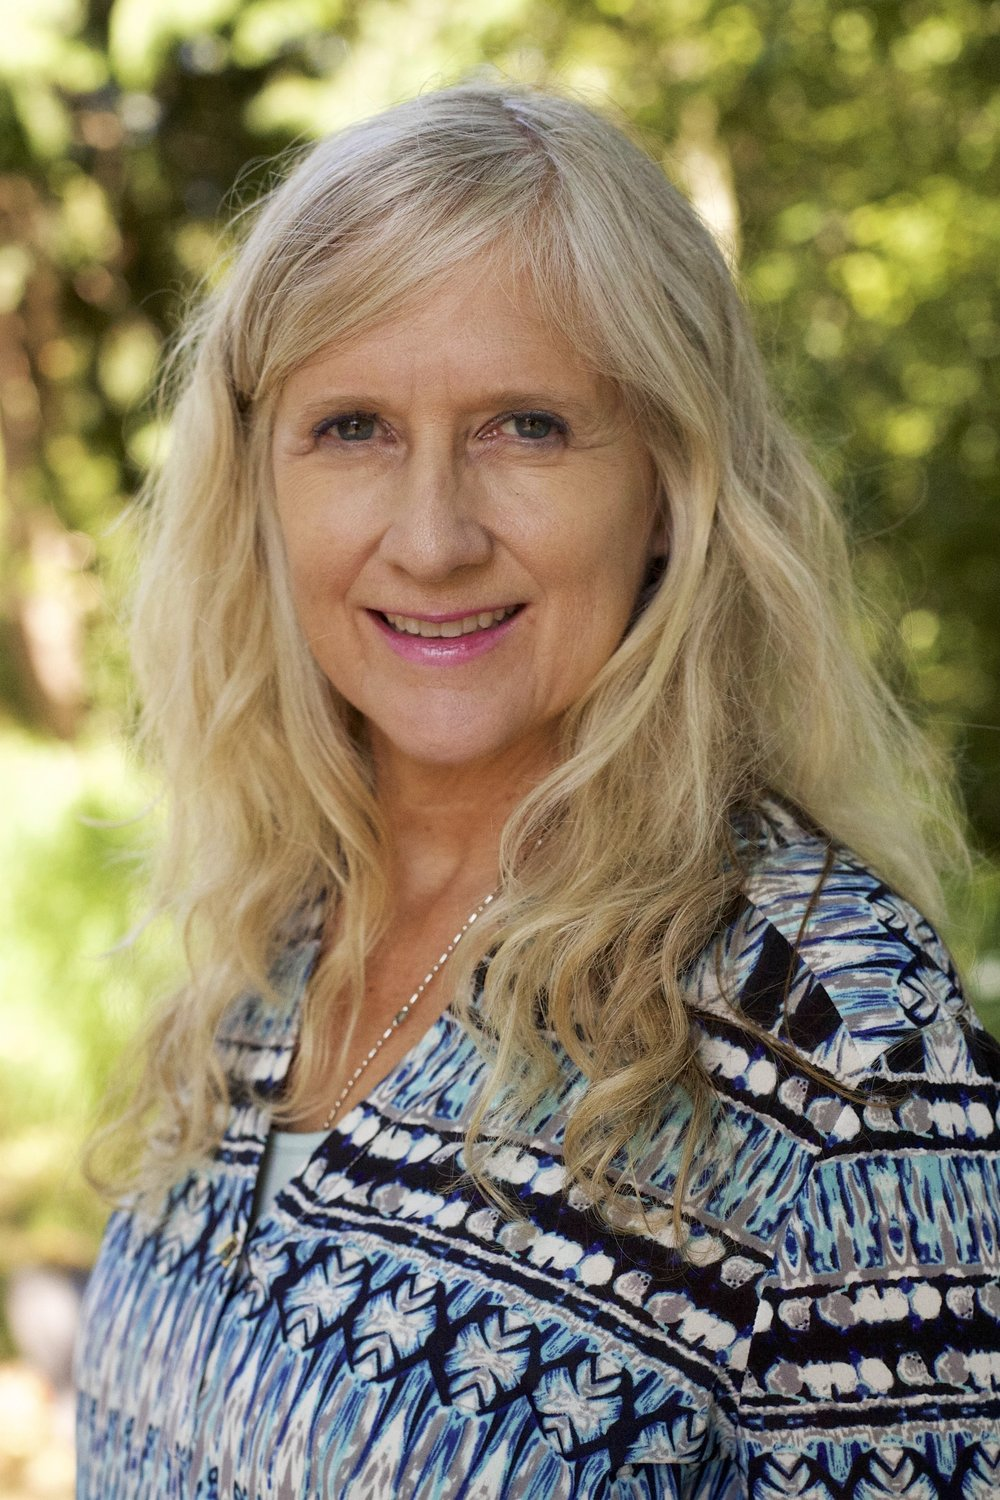 susan james, MSW, LICSW, therapist    ∙  Children, Adults, & Adolescents (Ages 18+)  ∙  Anxiety  ∙  Depression  ∙ PTSD/ Trauma   ∙  Grief & Loss  ∙  Life Transitions  ∙ Stress Management ∙ Mindfulness   ∙  Chronic/ Life-Limiting Illness  ∙  Veterans  ∙  Palliative Care/ Hospice  ∙  Positive Psychology  ∙  DBT  ∙  Couples  ∙  Families  ∙  Addiction  ∙ Spirituality